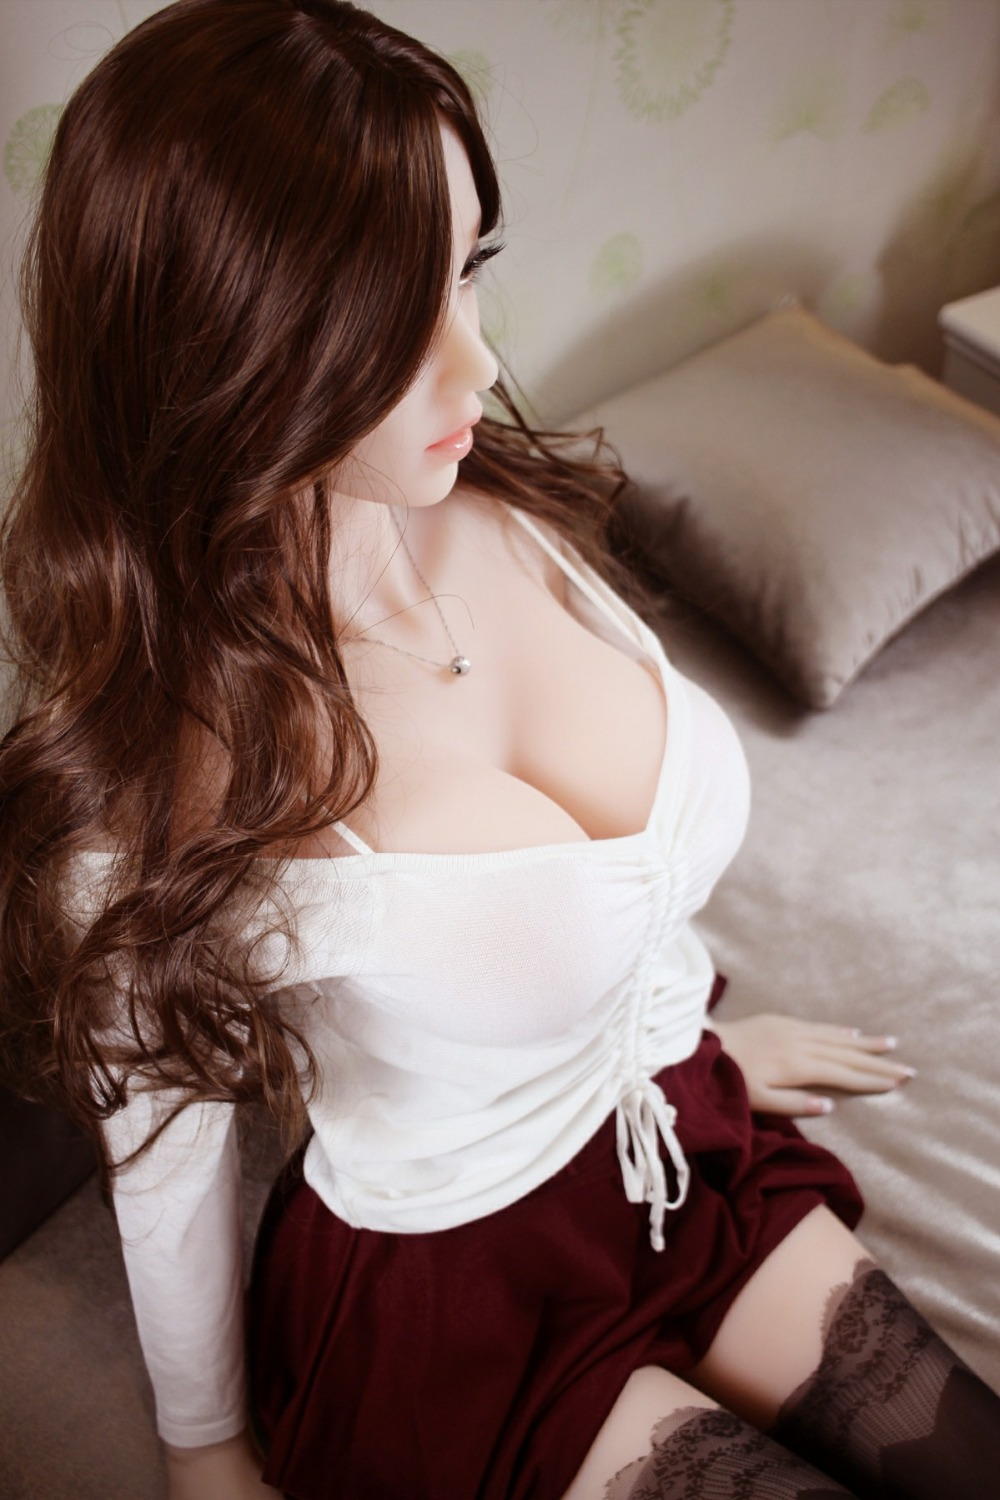 WMdoll 165cm big breast sex dolls for men TPE sexy doll adult toys Japanese Full Silicone Love doll 1